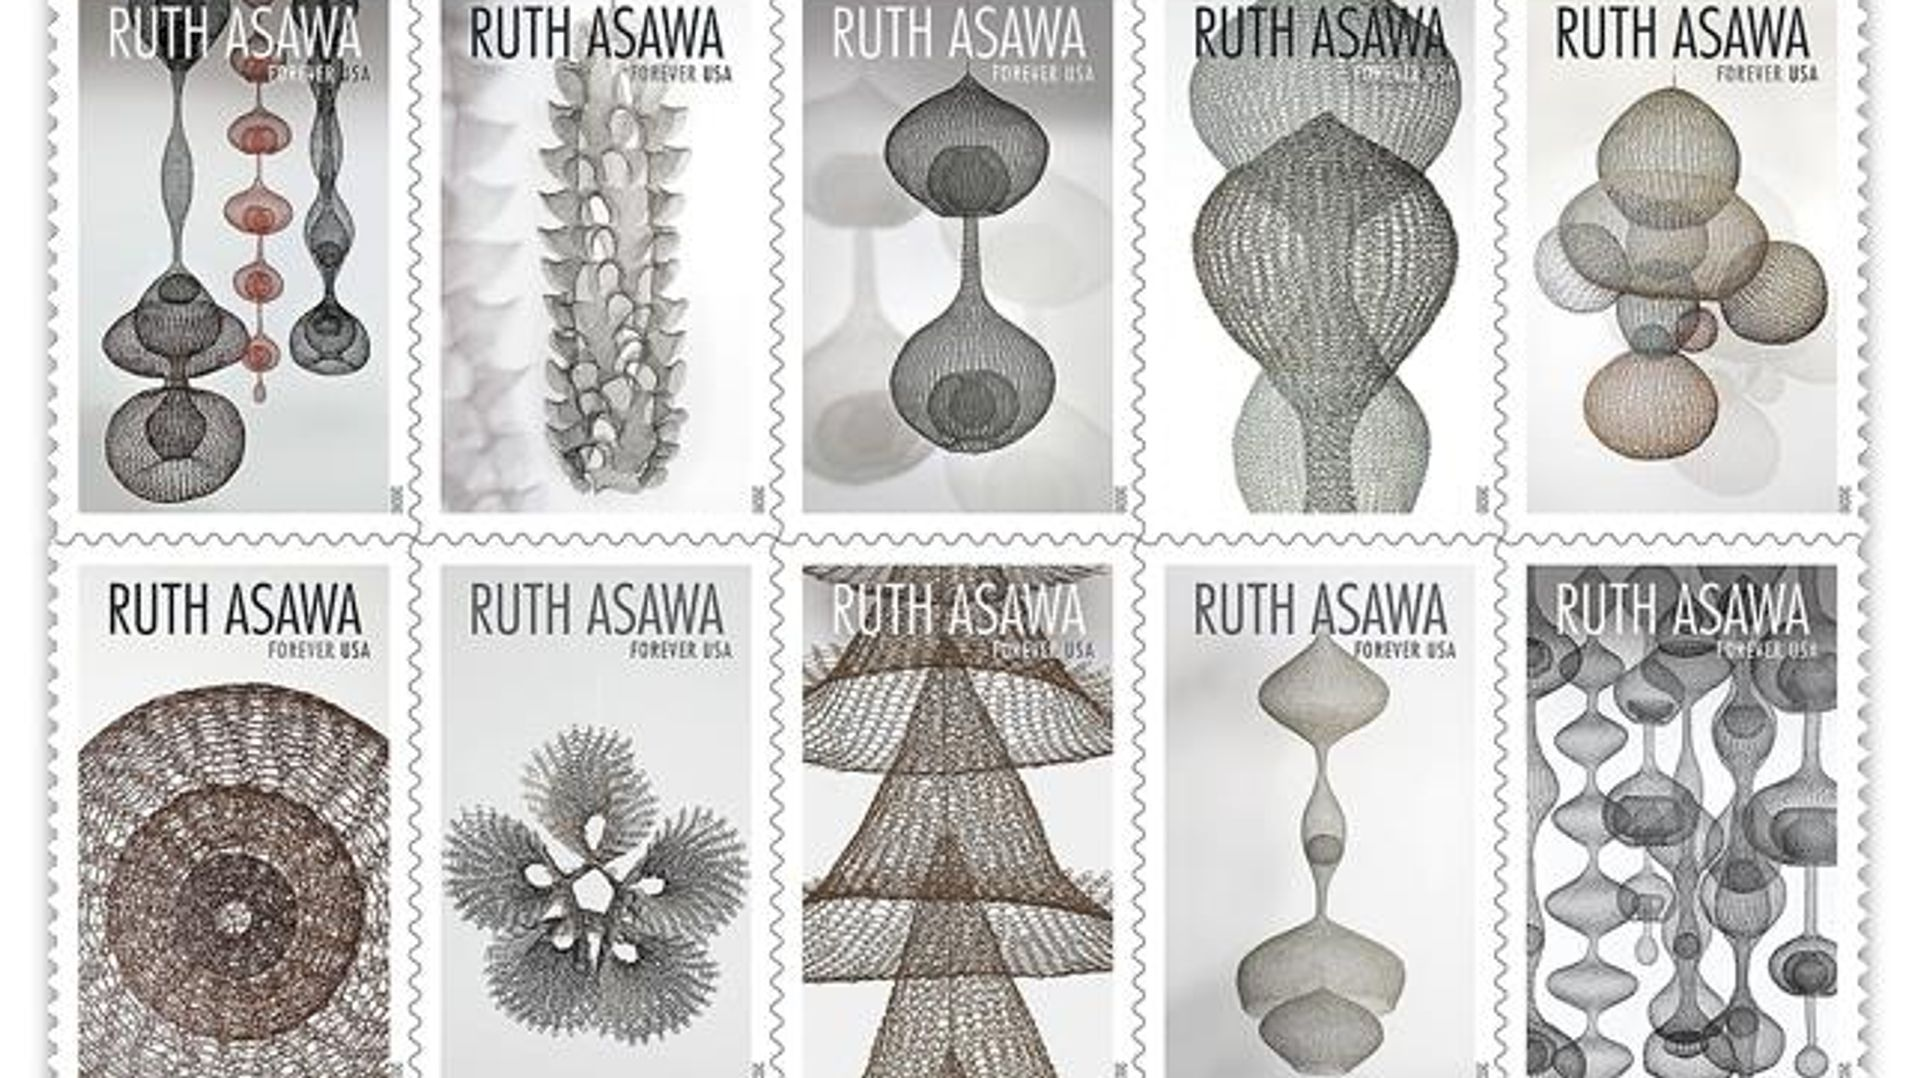 The black-and-white stamps, sold in sheets of 20 for $11, have been designed by the USPS art director Ethel Kessler and feature images of works made between 1954 and 1996